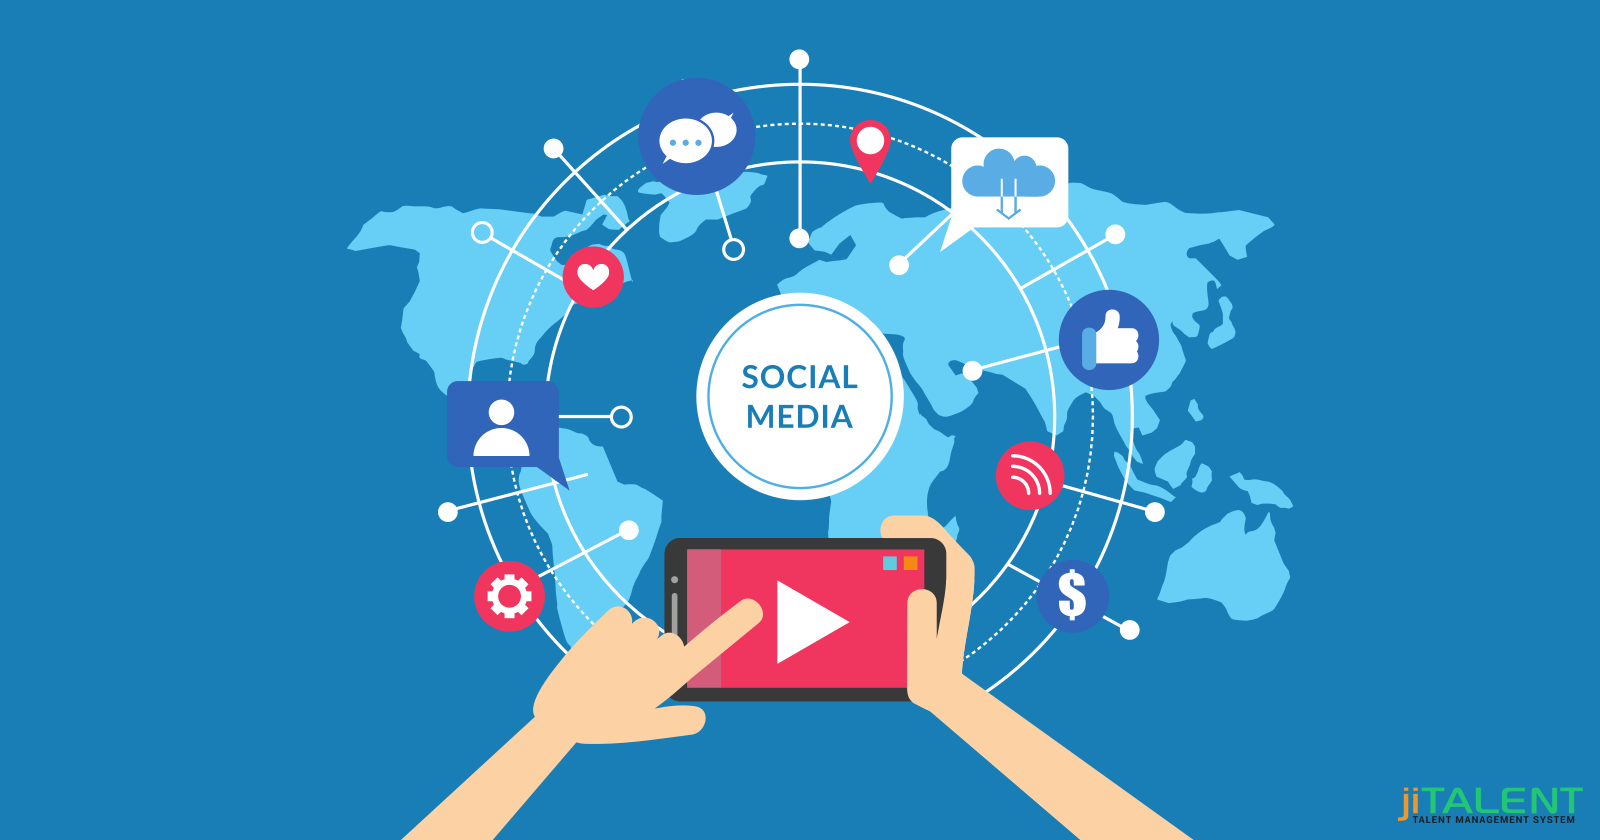 Social Media Indulges in Talent Management System